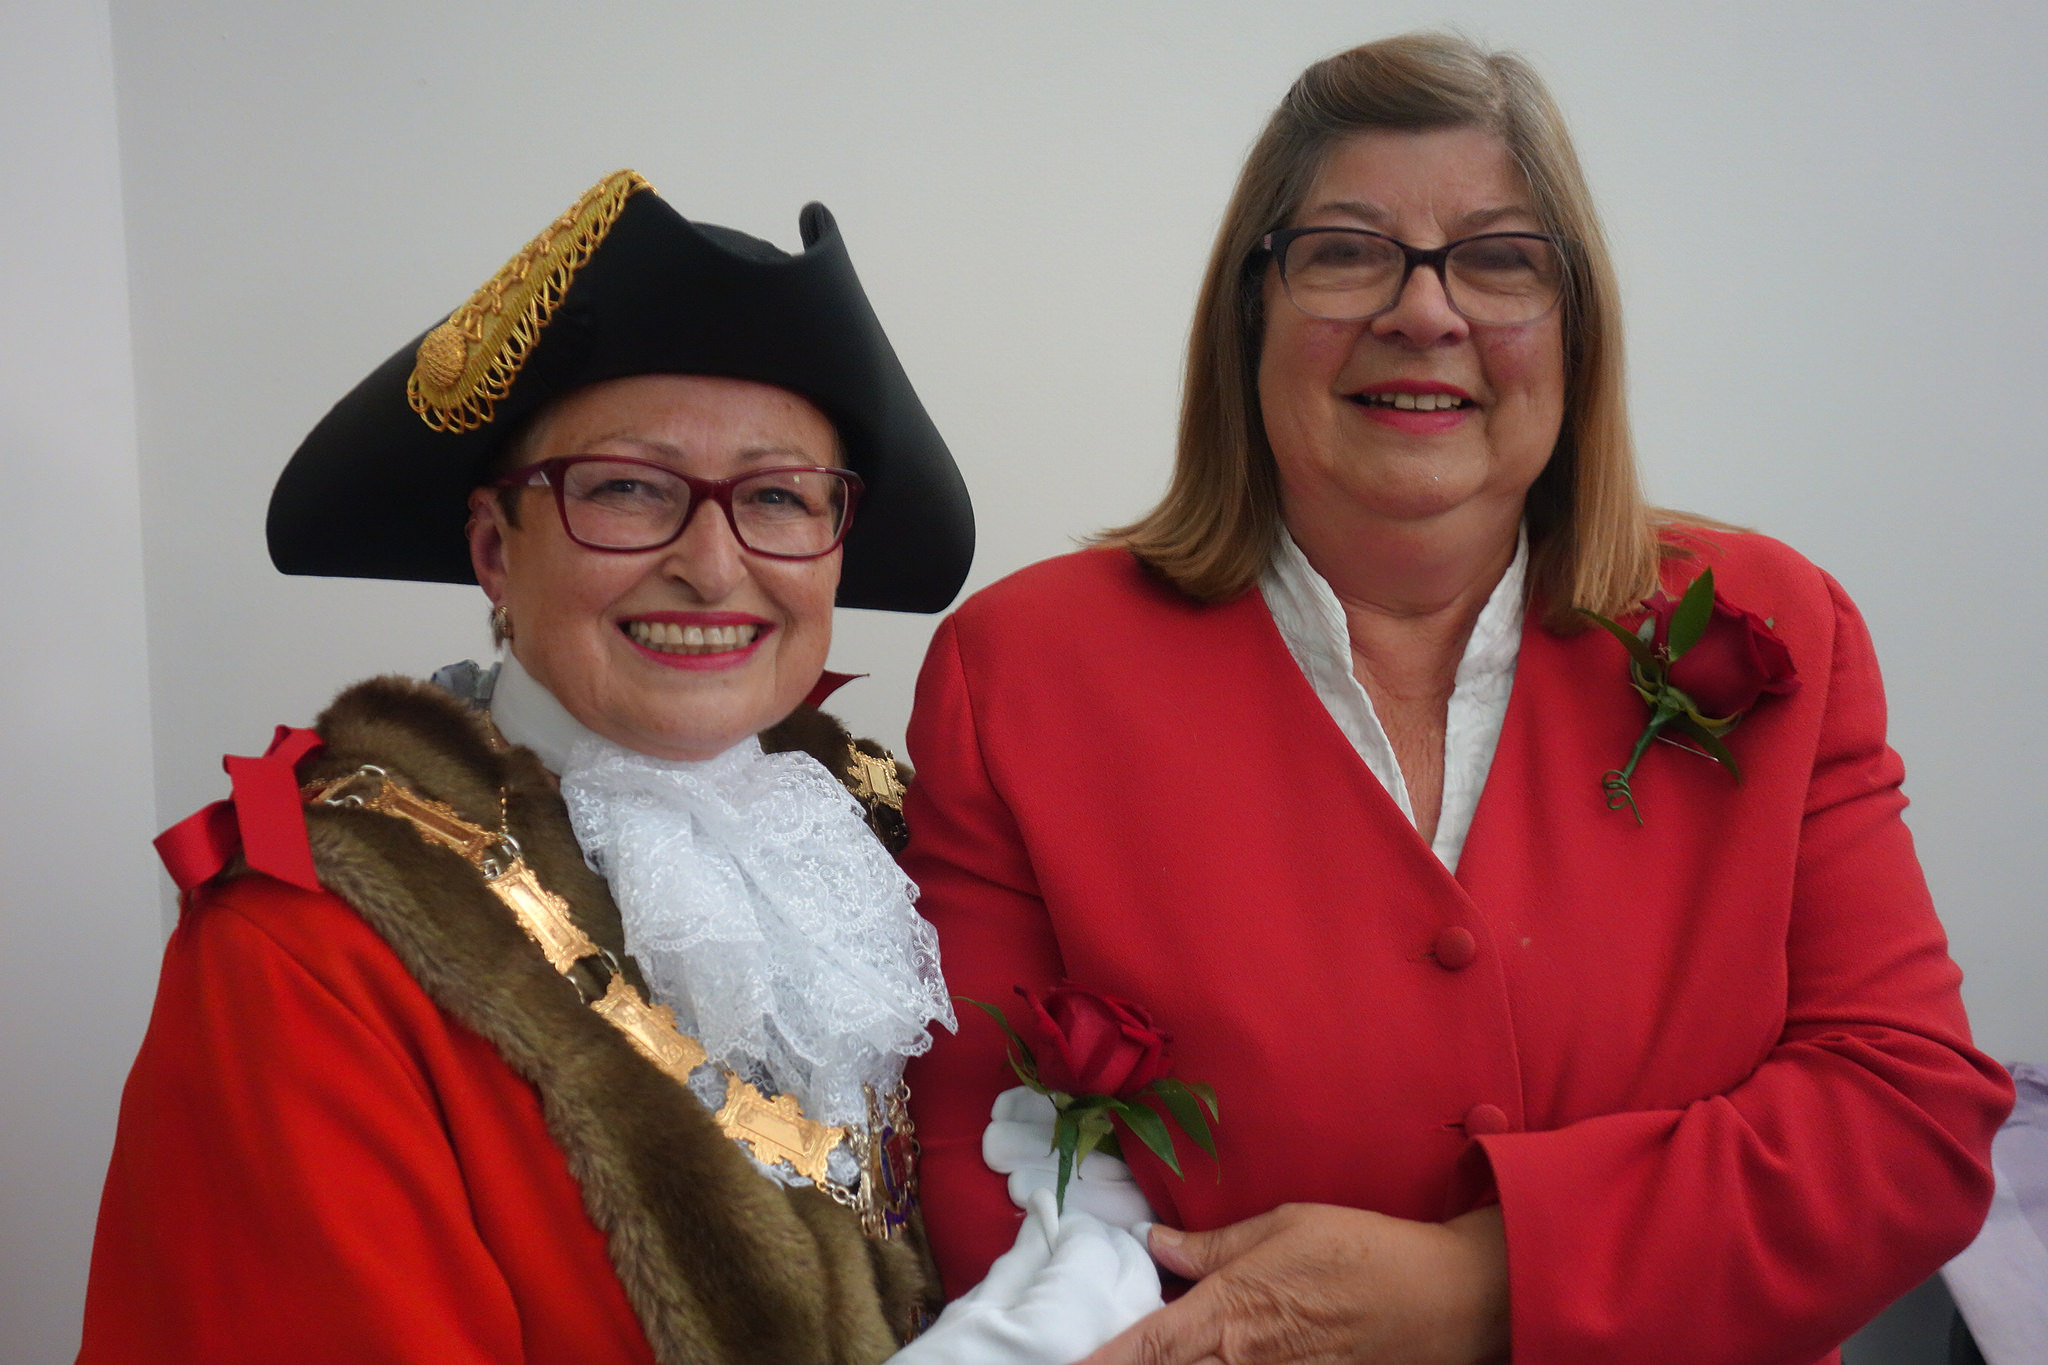 Cllr-Debs-Edwards-Mayor-making-2_210618